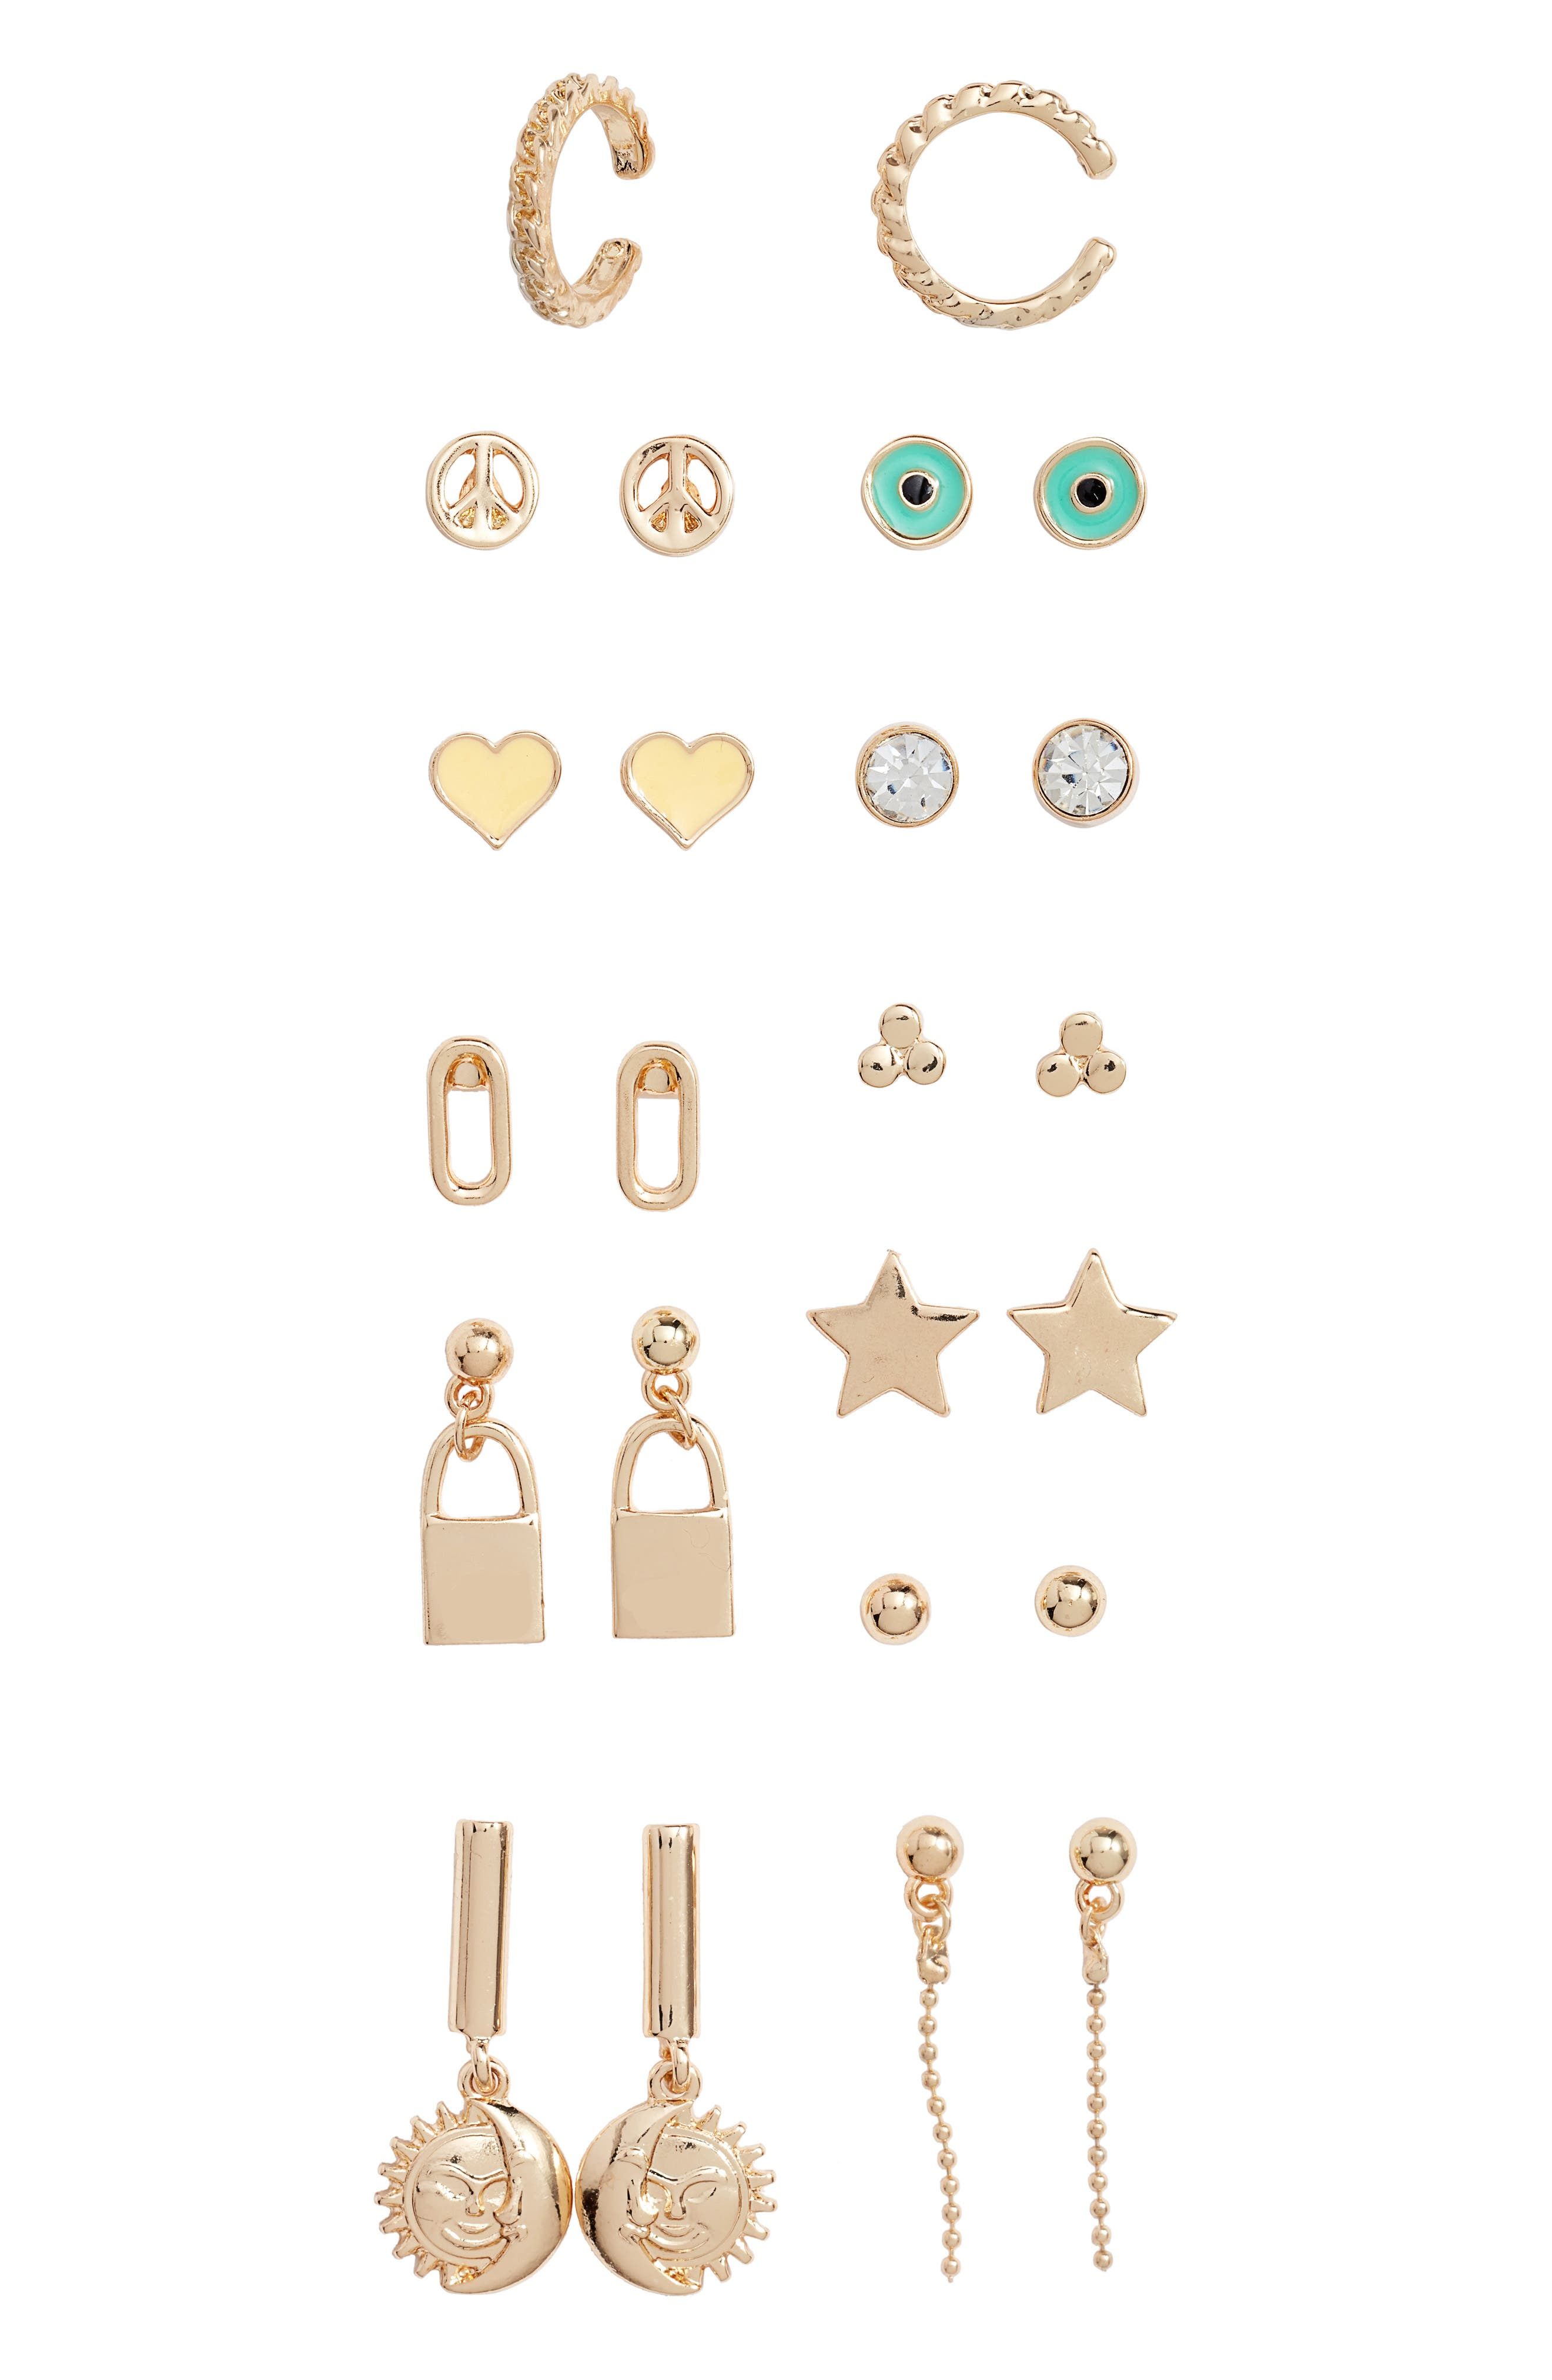 Image of BP. Assorted Earrings - Set of 12